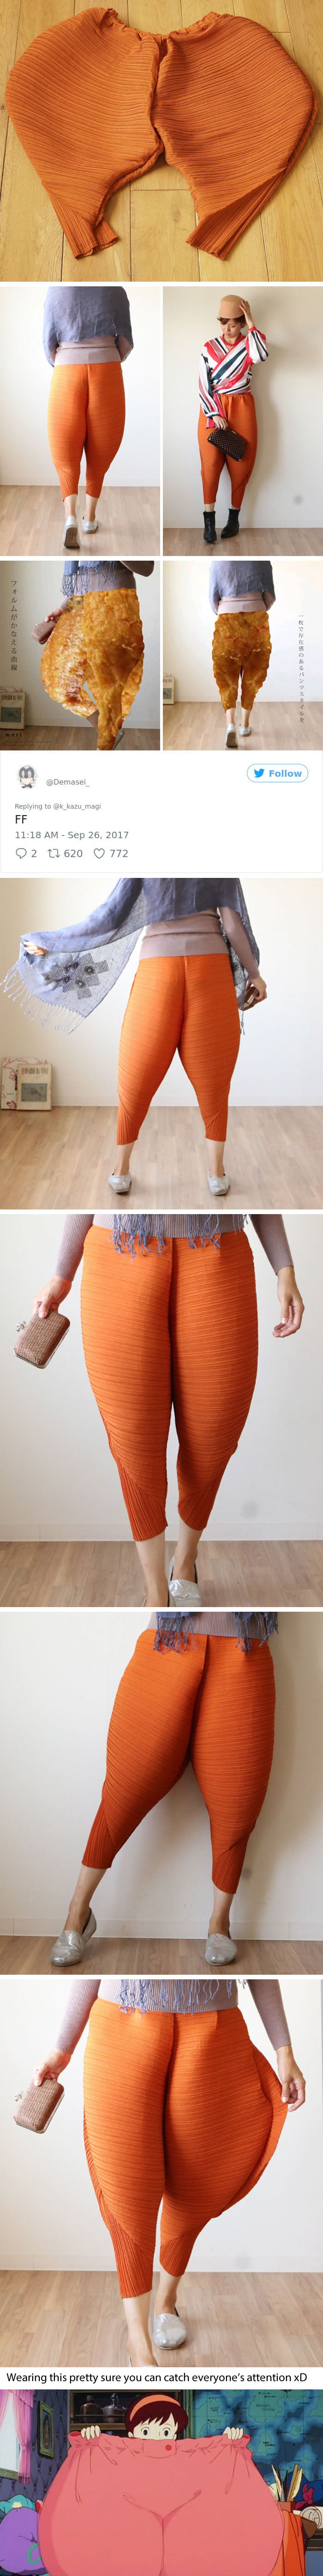 Fried Chicken Drumstick-Like Pants Will Definitely Make You A Fashionista